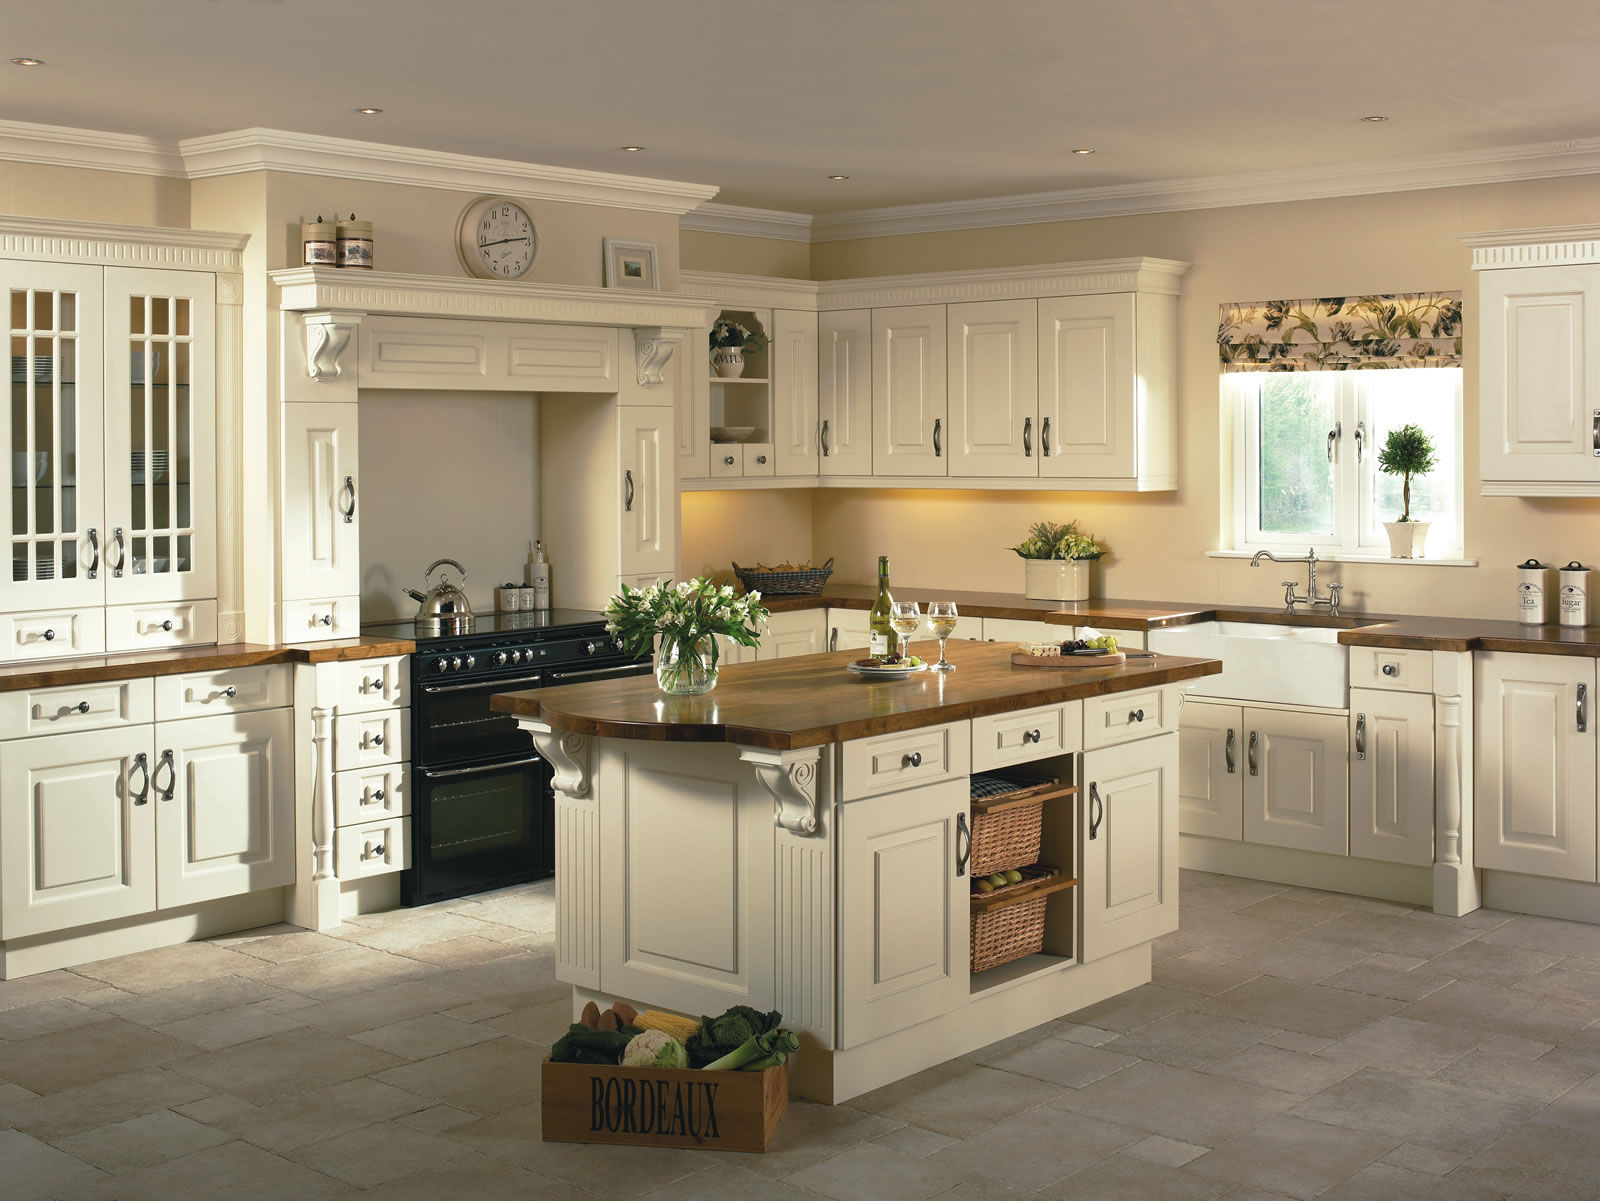 custom fitted kitchens galway nationwide galworx galway ireland